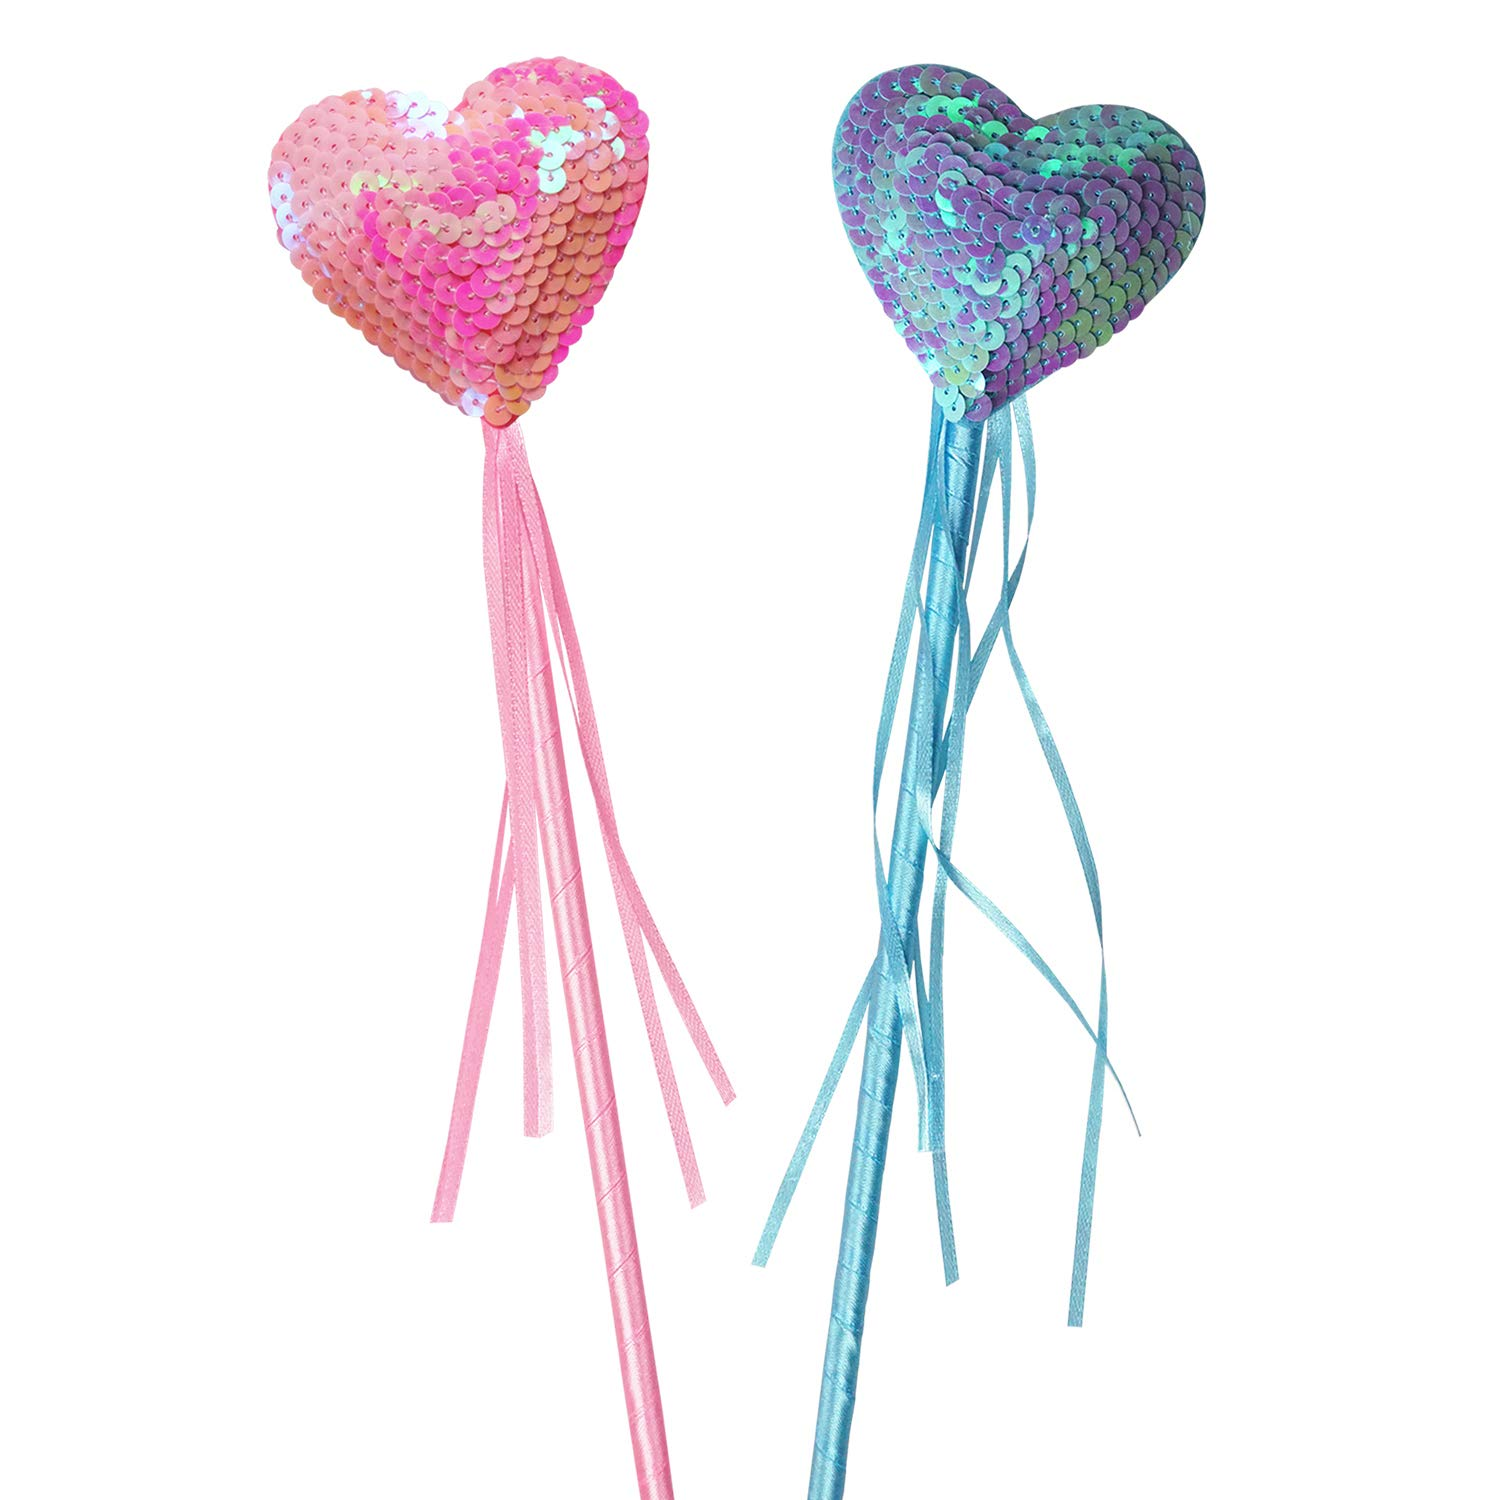 Fairy Princess Magic Wand Heart Wands Ribbon Magic Wand Toy For Kids Pink And Blue Wands Party Favors by Shxstore